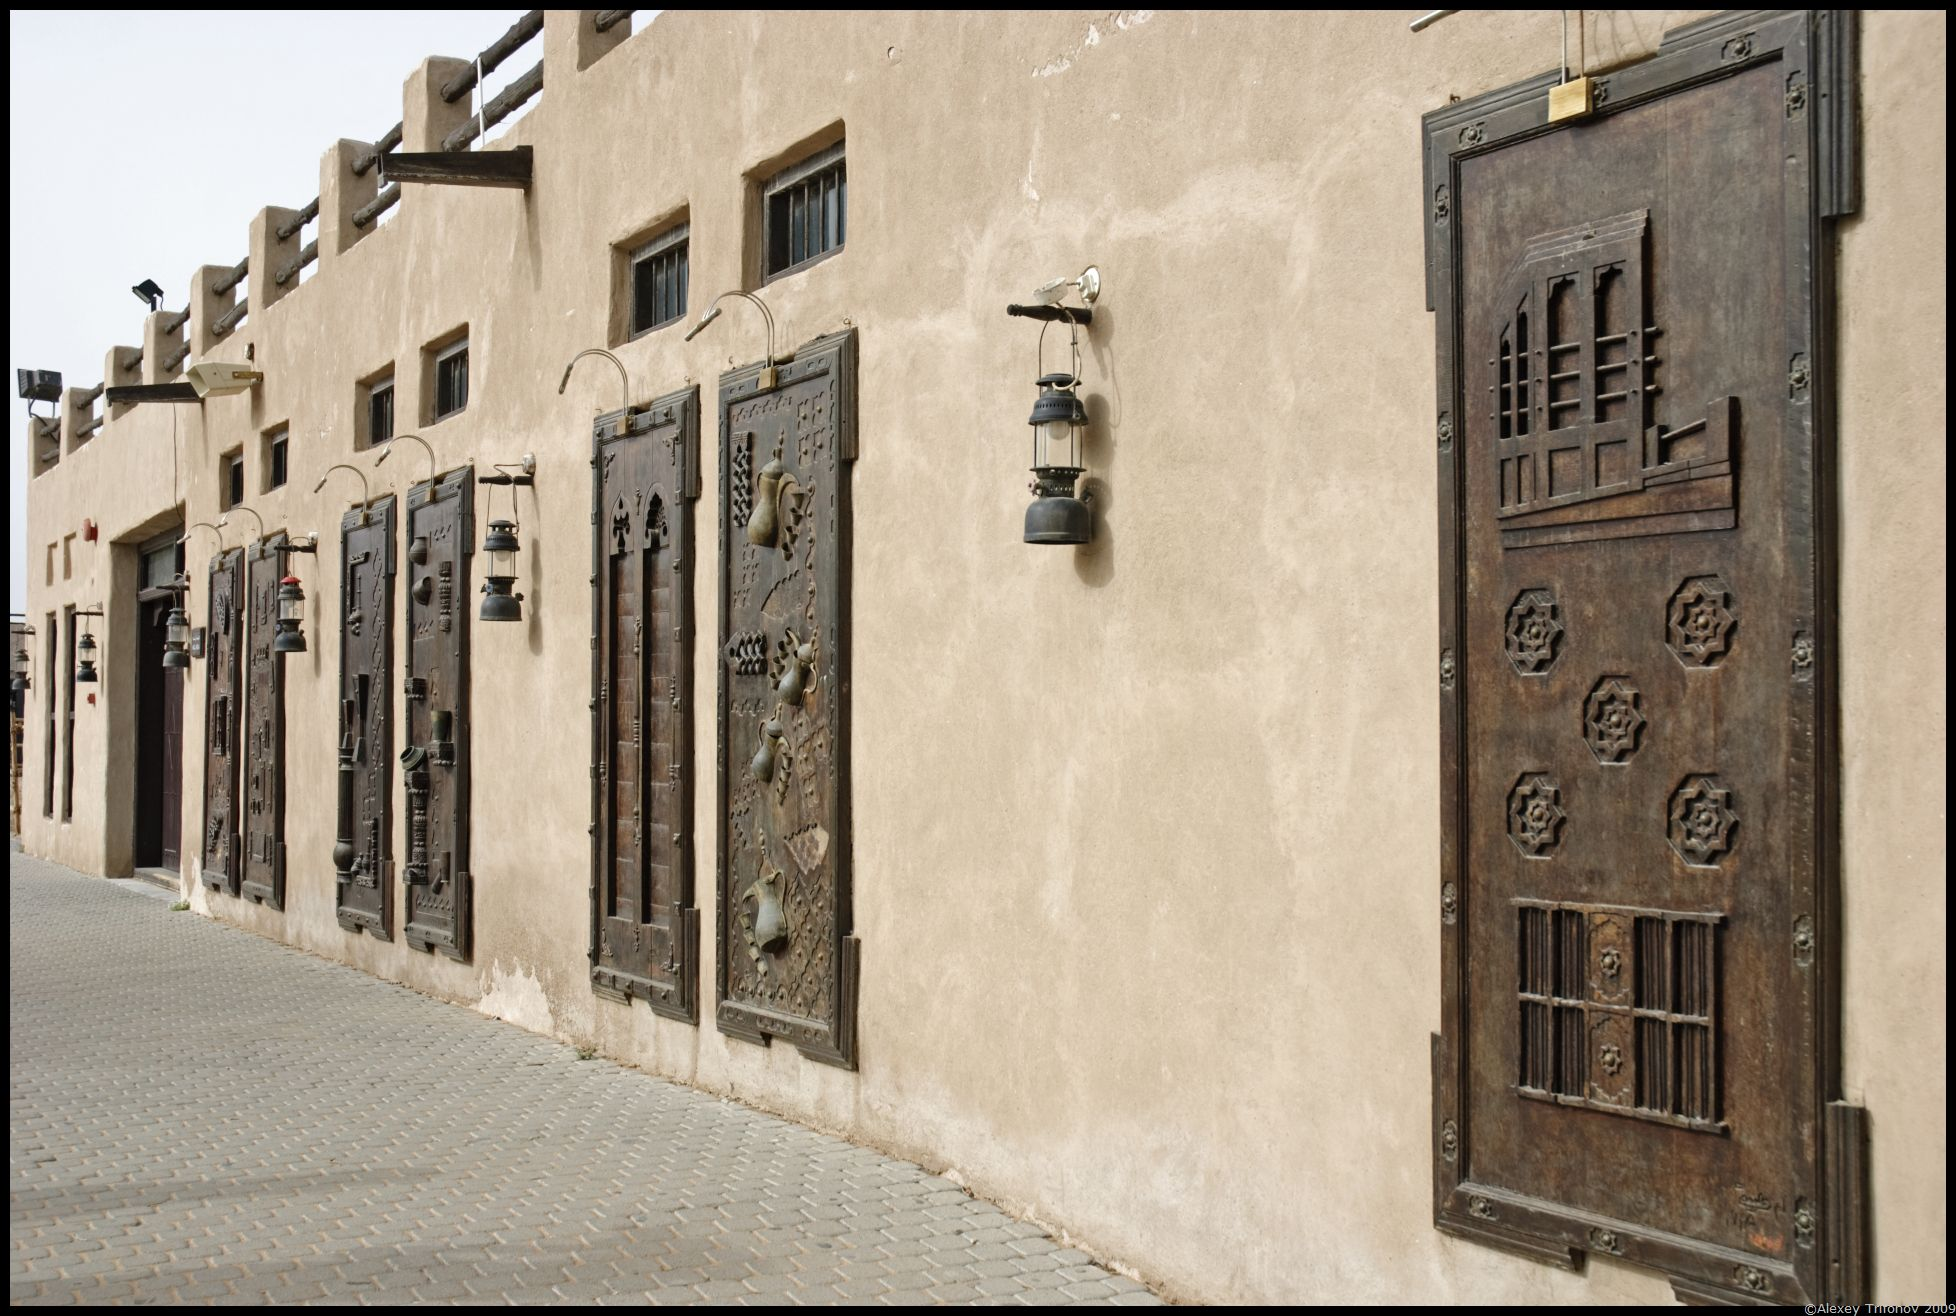 Doors and lamps - open air museum